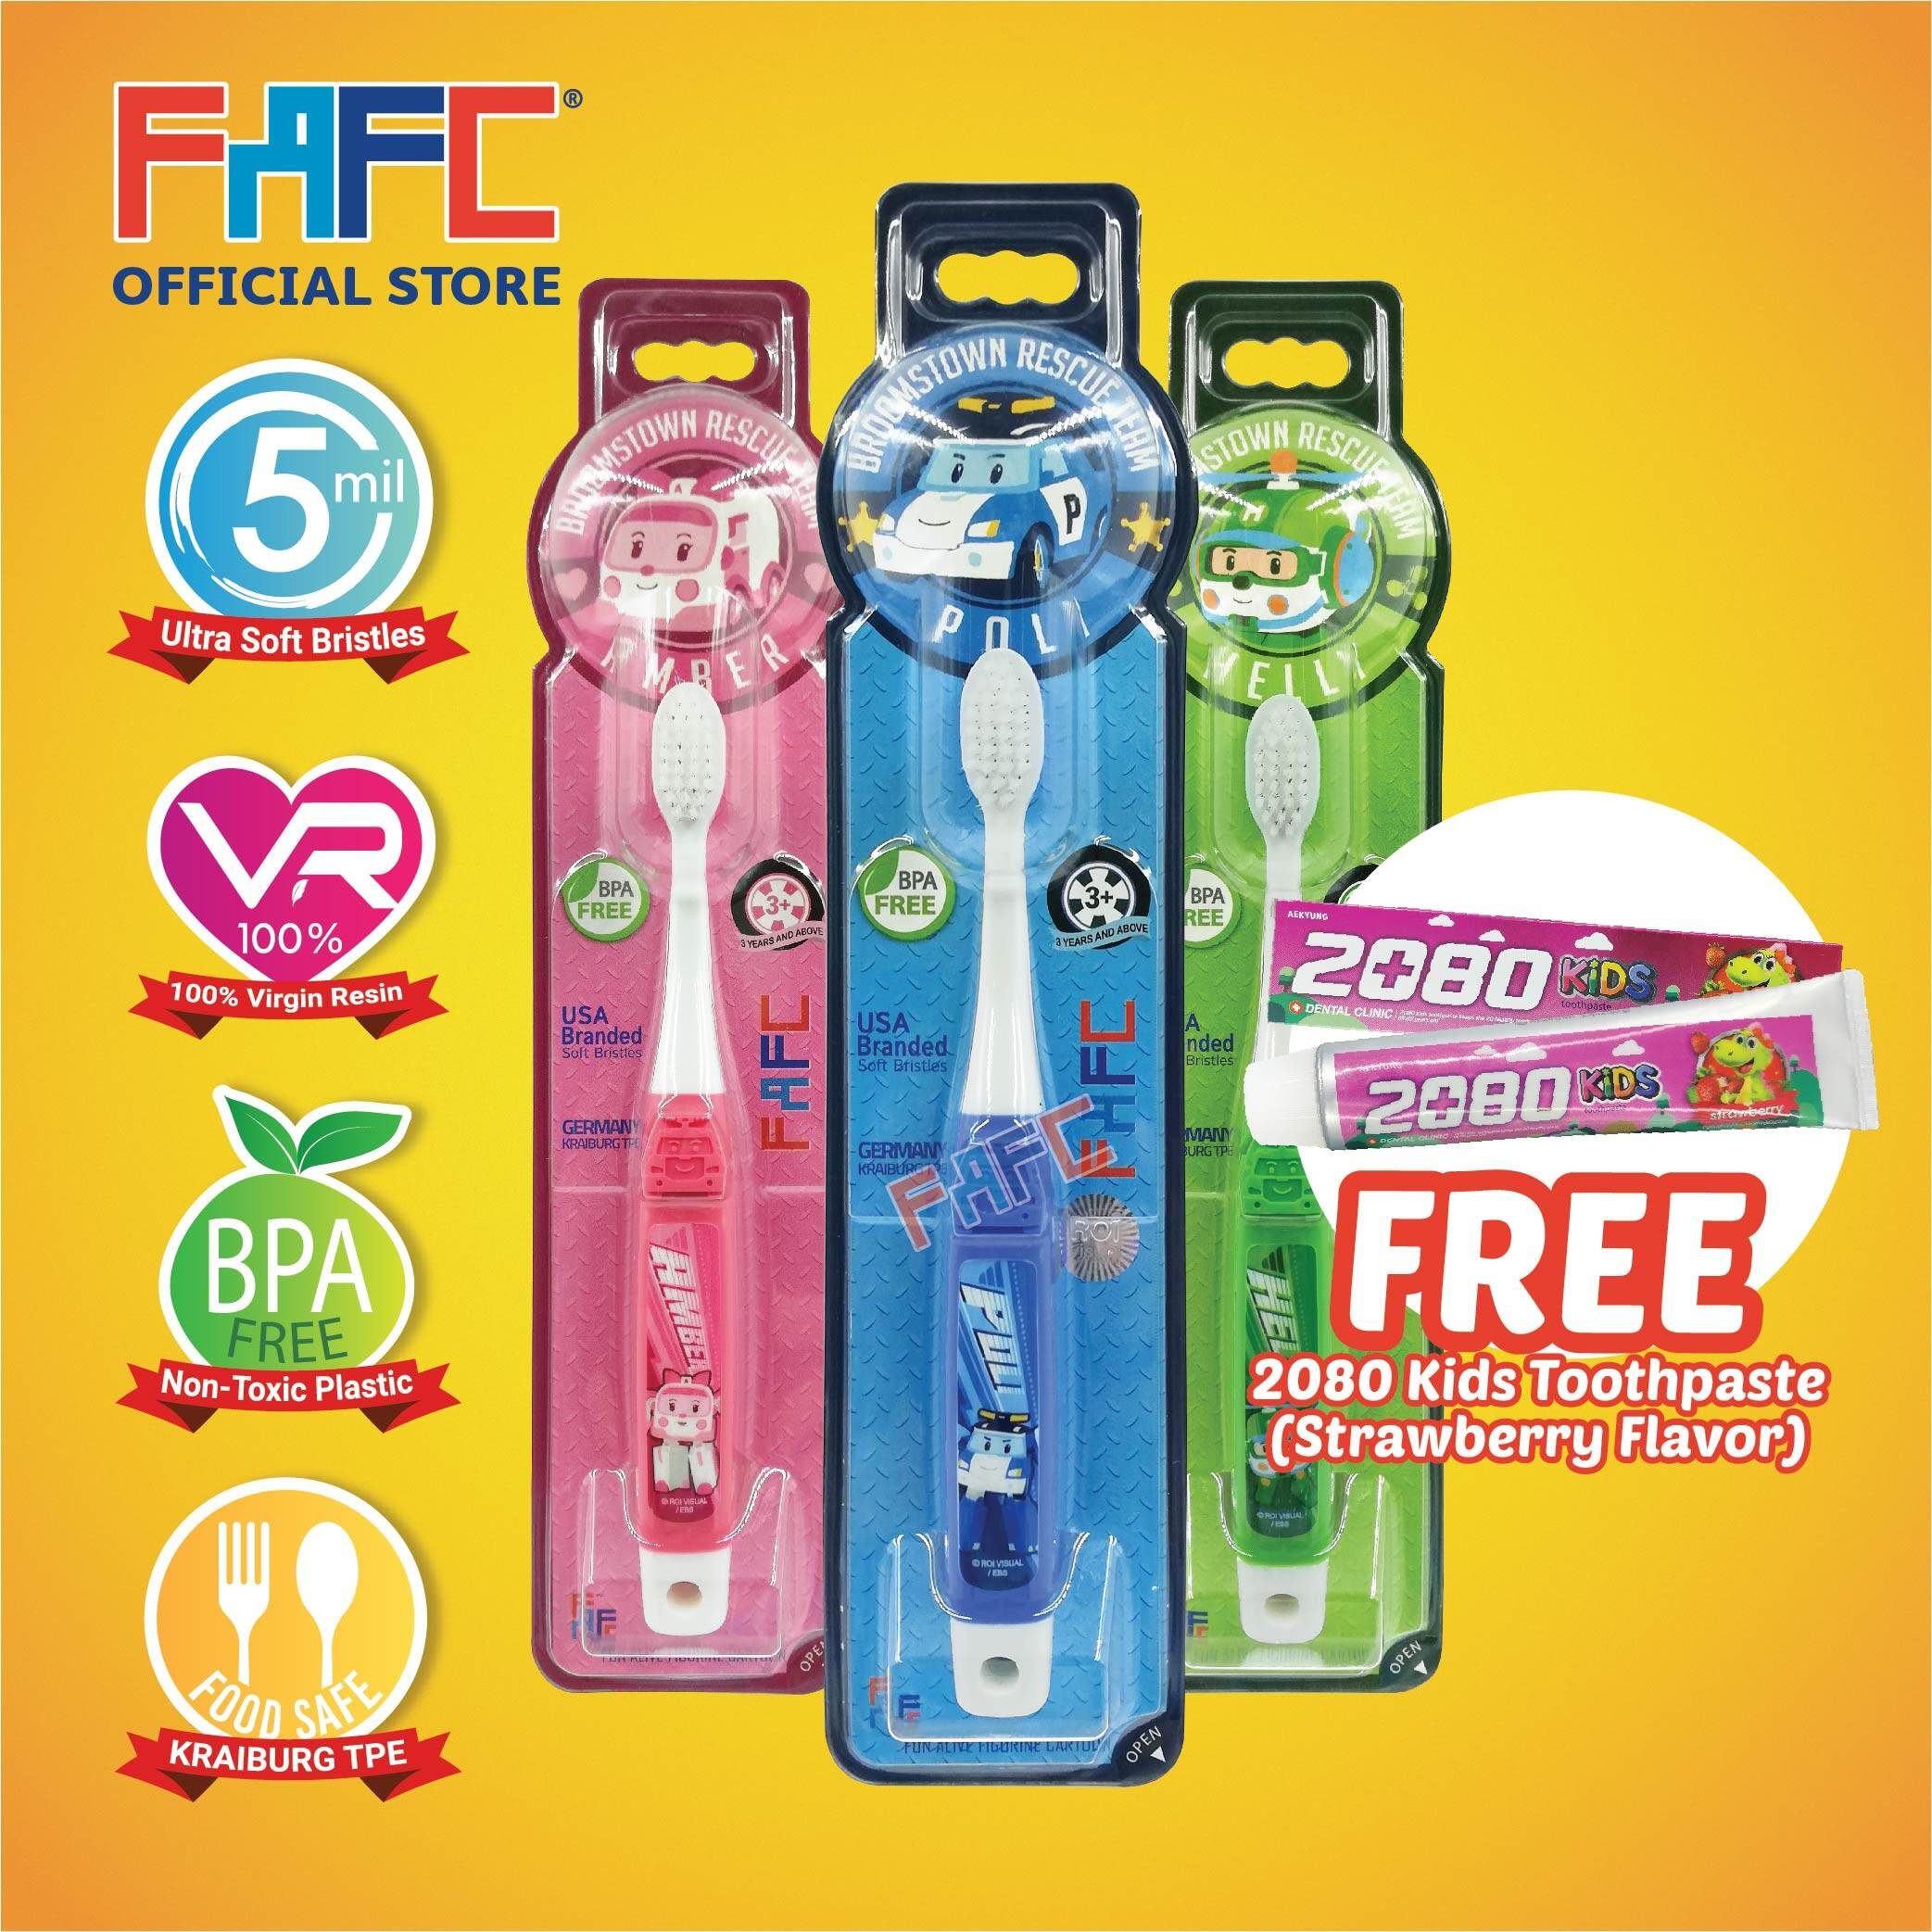 POLI AMBER HELLY - (3 Pcs) FAFC Robocar Poli Hook Kids Toothbrush FREE 2080 Kids Toothpaste (Strawberry Flavor)